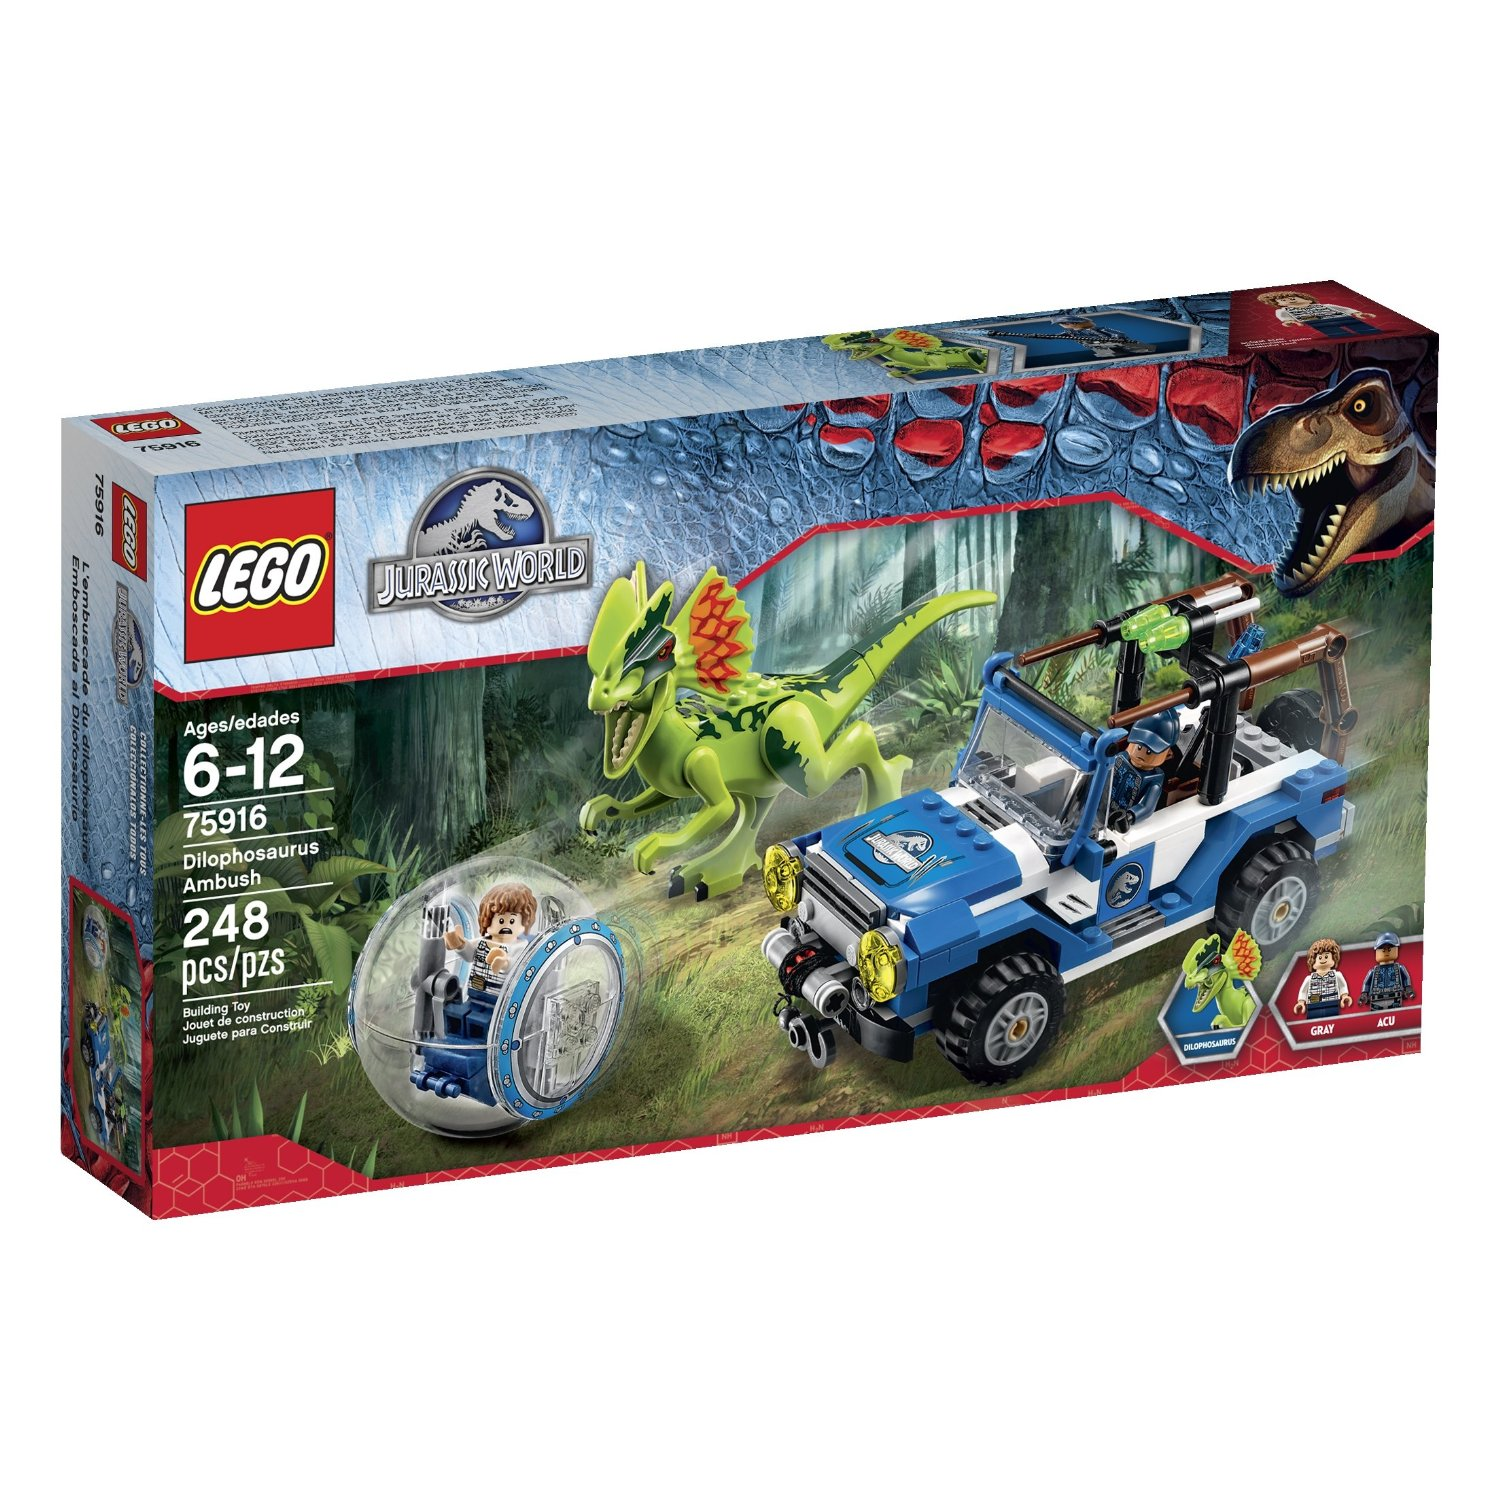 Lego Deals On Amazon March 17 2016 Frugal Fun For Boys And Girls